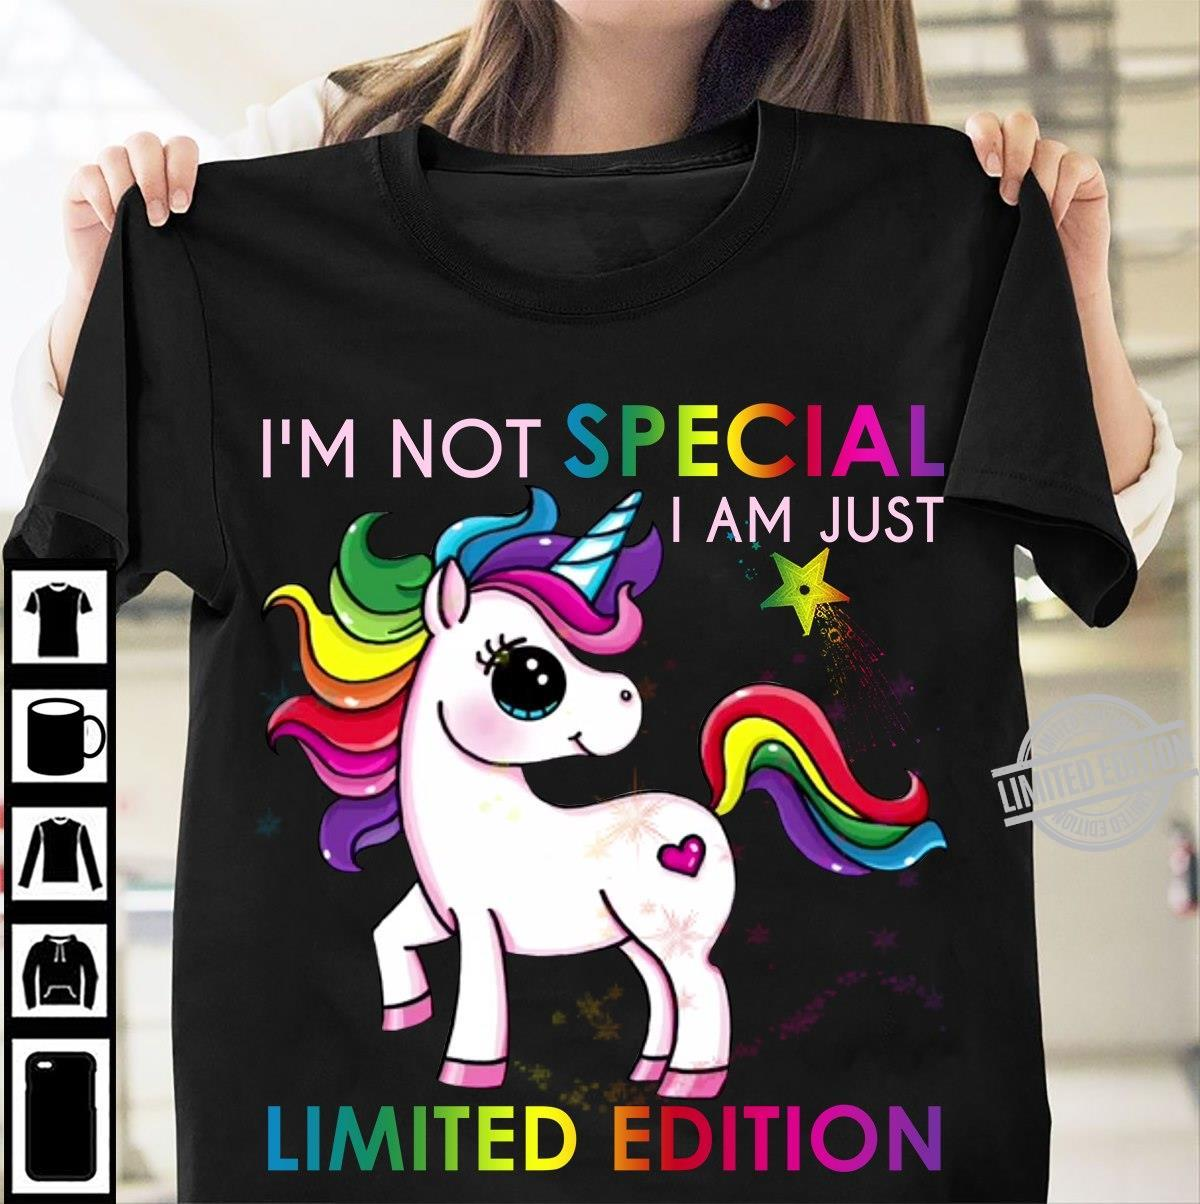 I'm Not Special I A Just Limited Edition Shirt